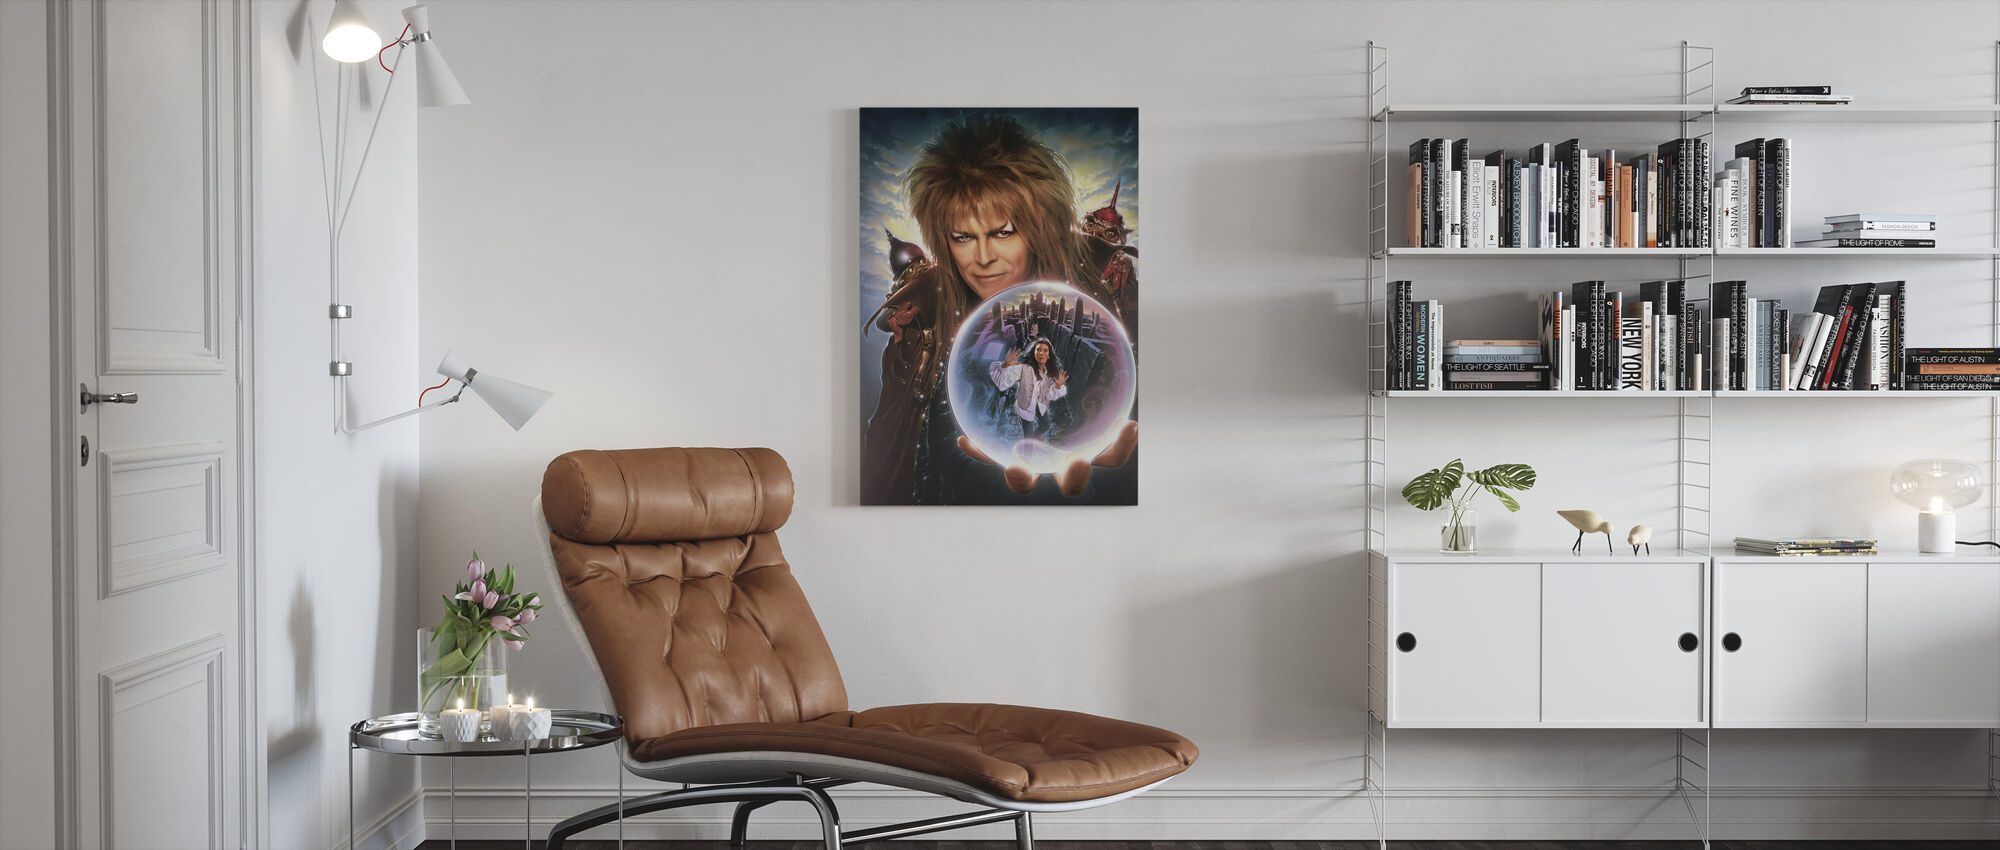 David Bowie in Labyrinth - Canvas print - Living Room